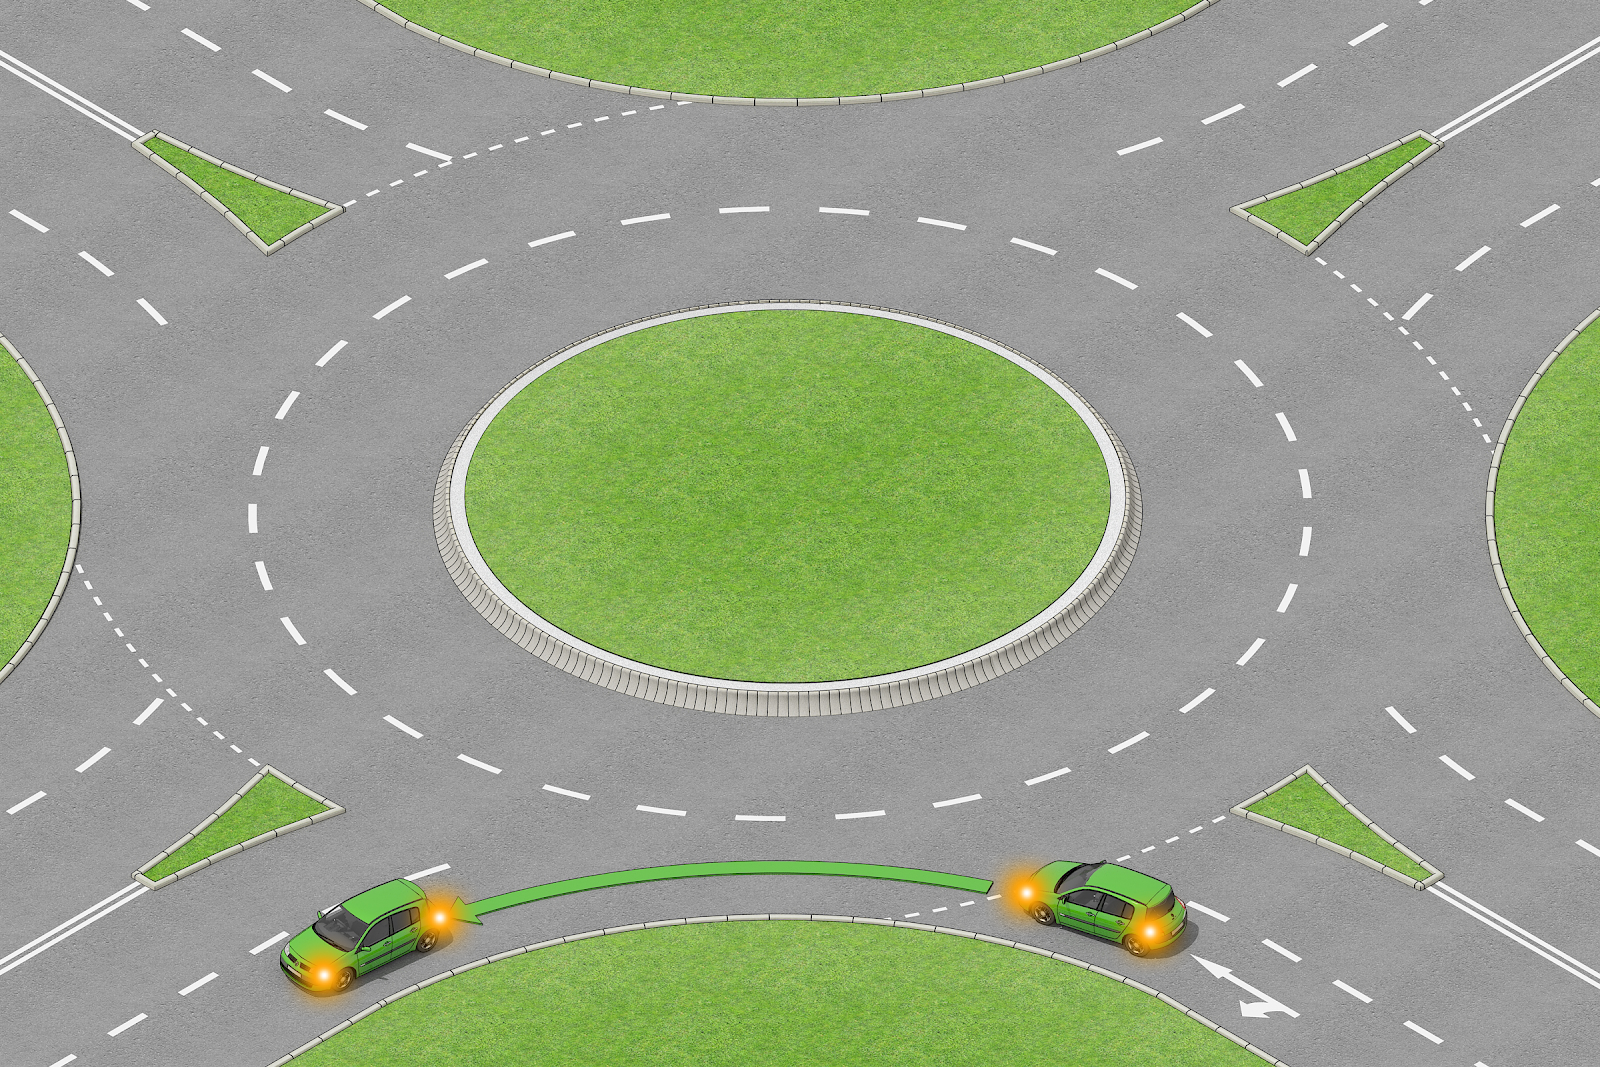 HOW TO USE THE FIRST EXIT AT A ROUNDABOUT TO TURN LEFT